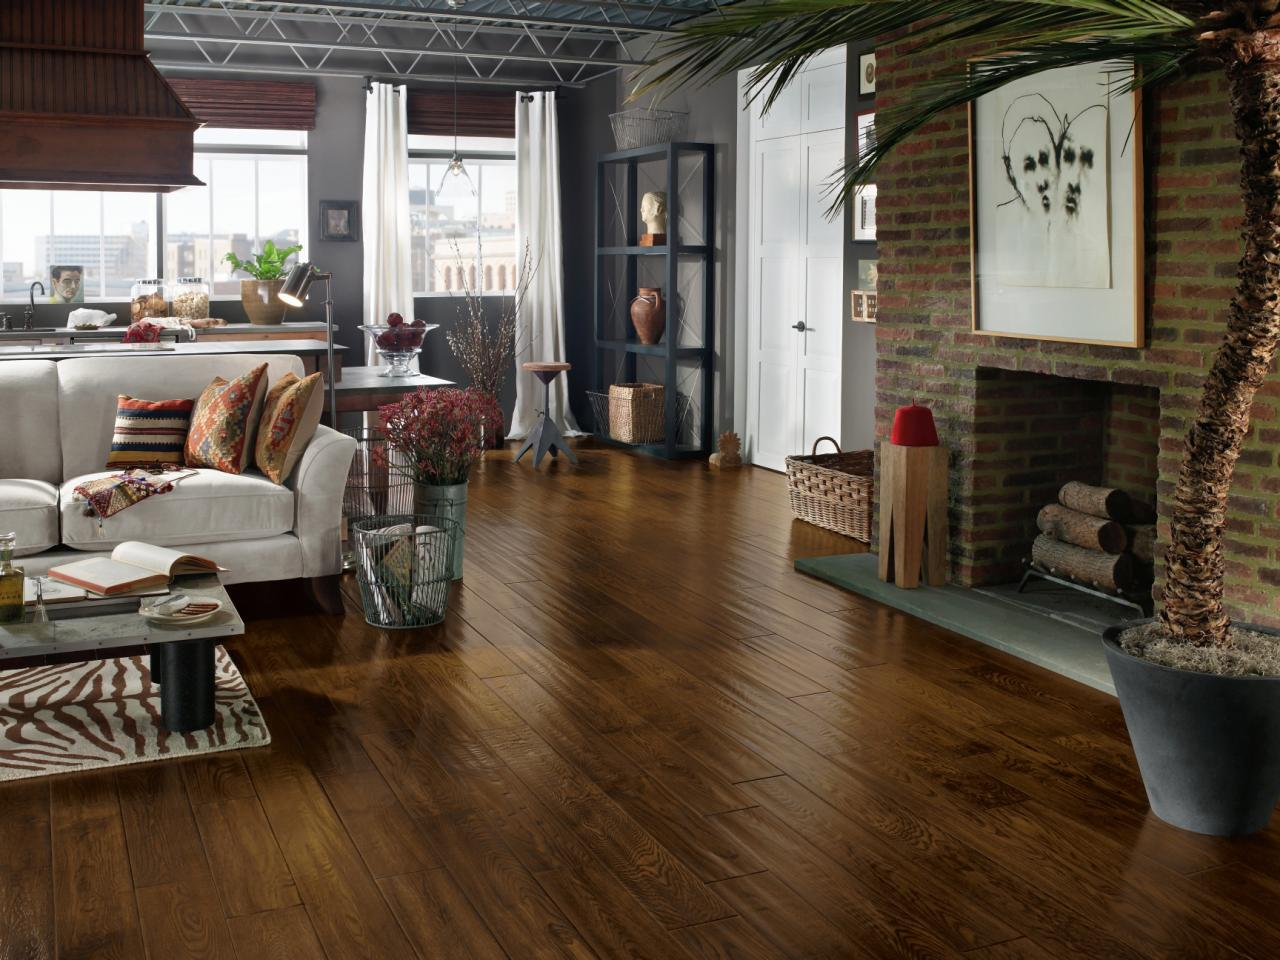 Contemporary Living Space with Wood Floor